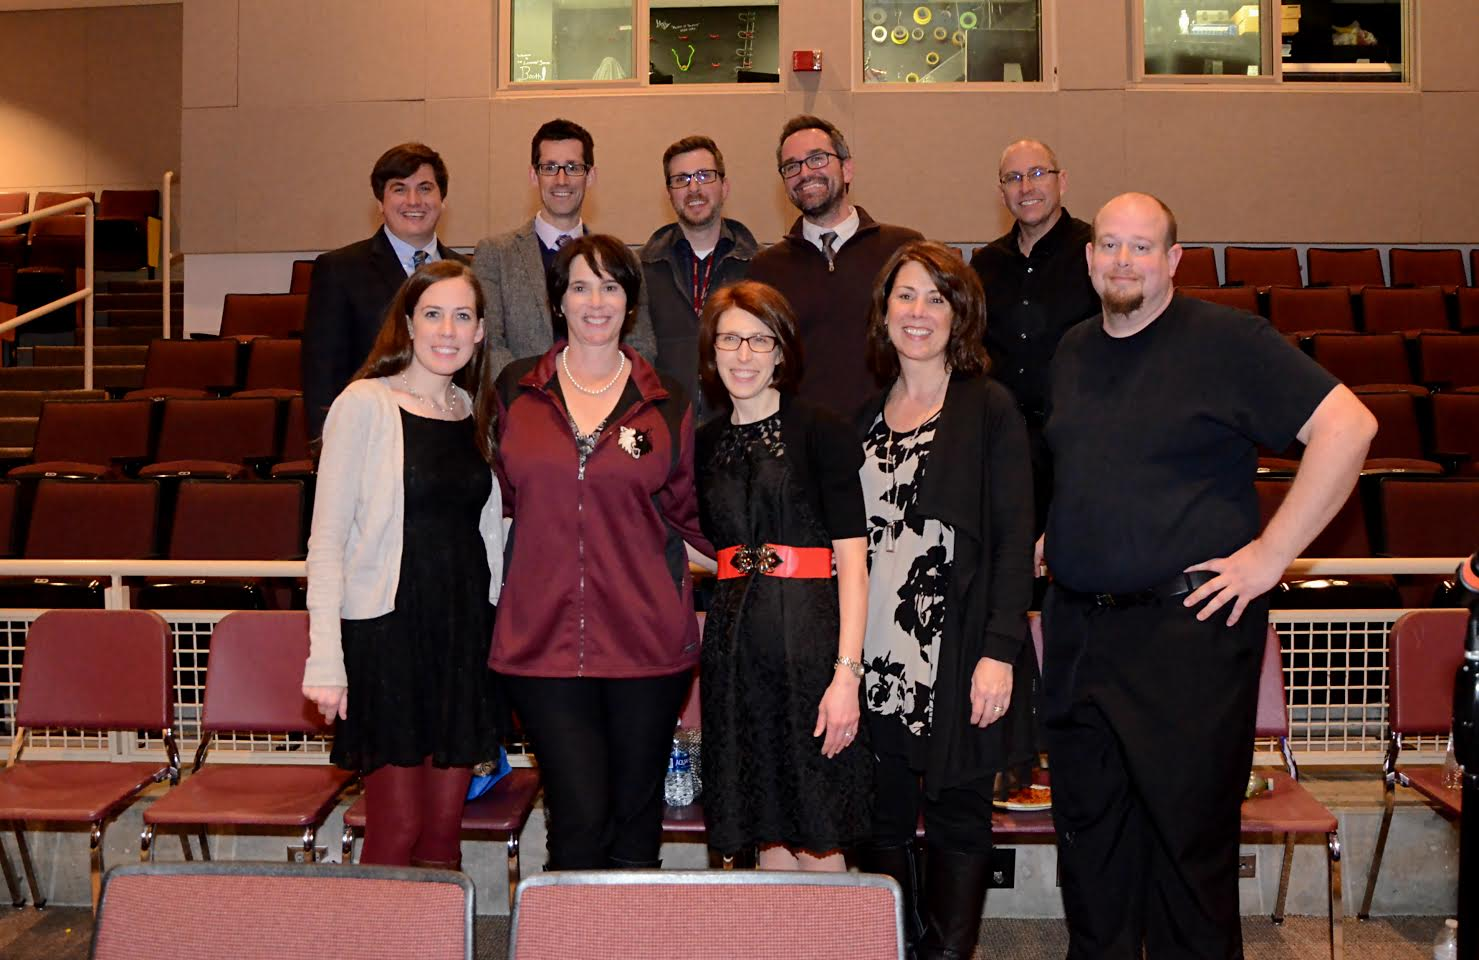 Tale of Two Cities musical author Jill Santoriello (first row, second from left) poses with the musical's directors.